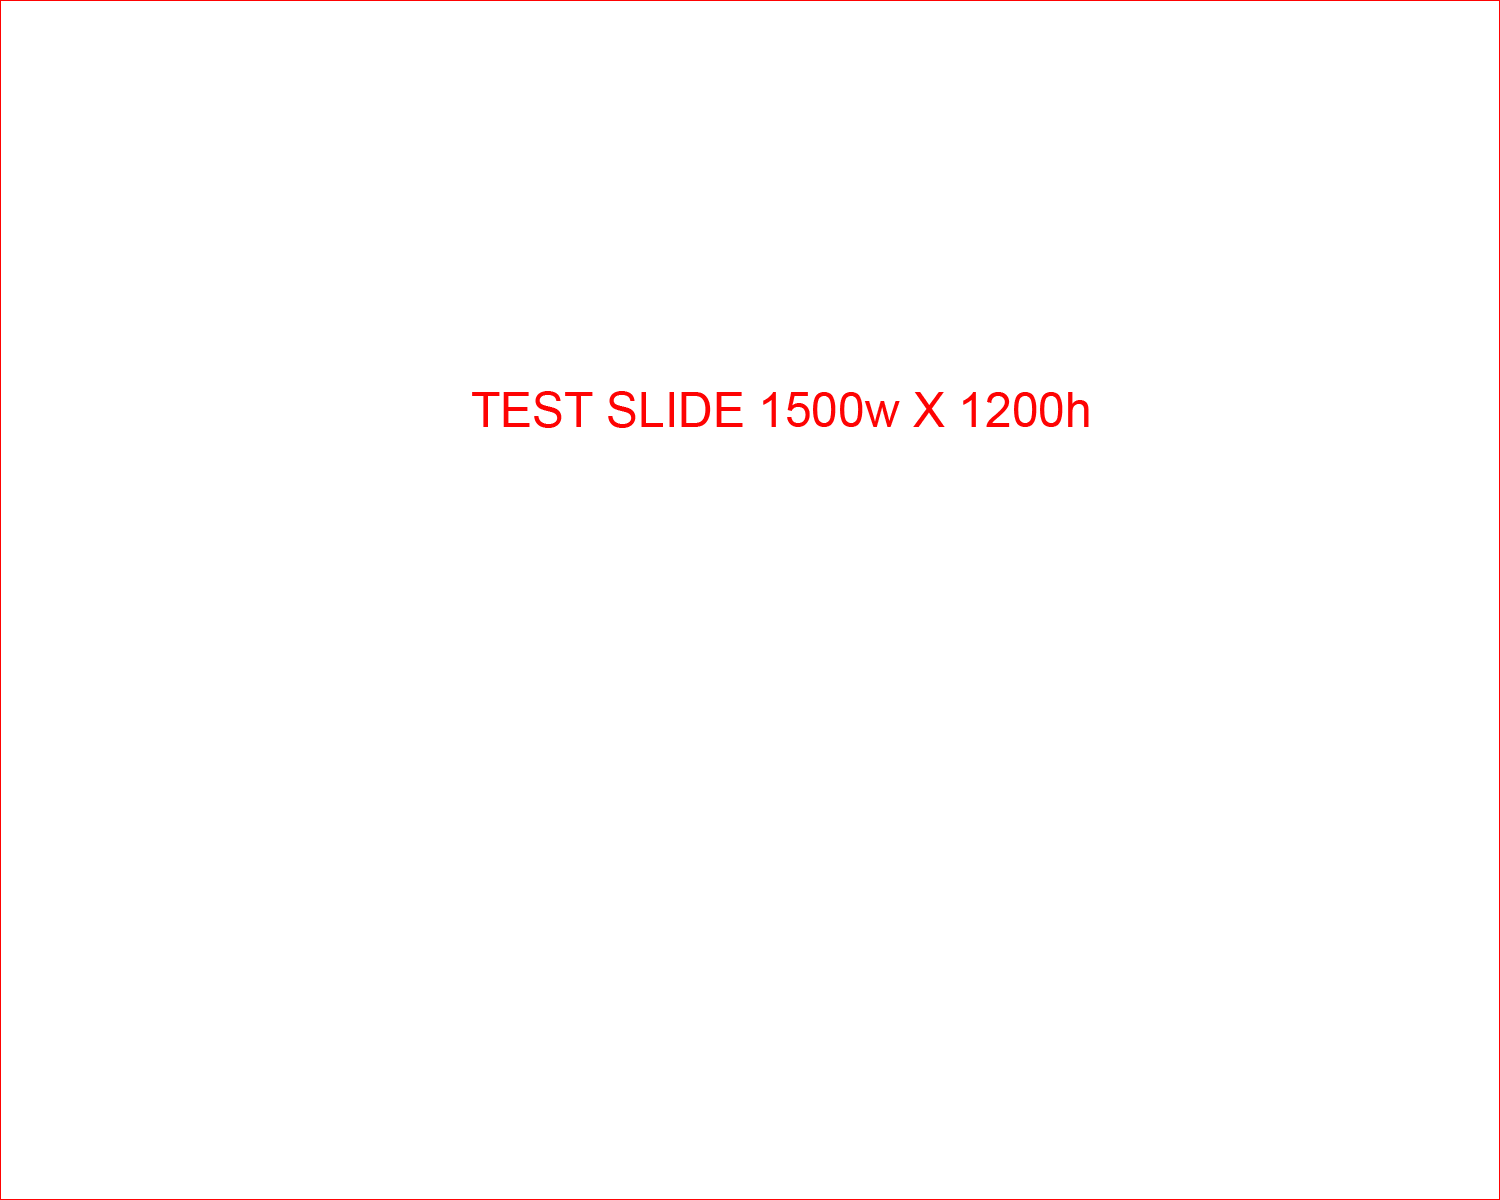 test-1500x1200.png